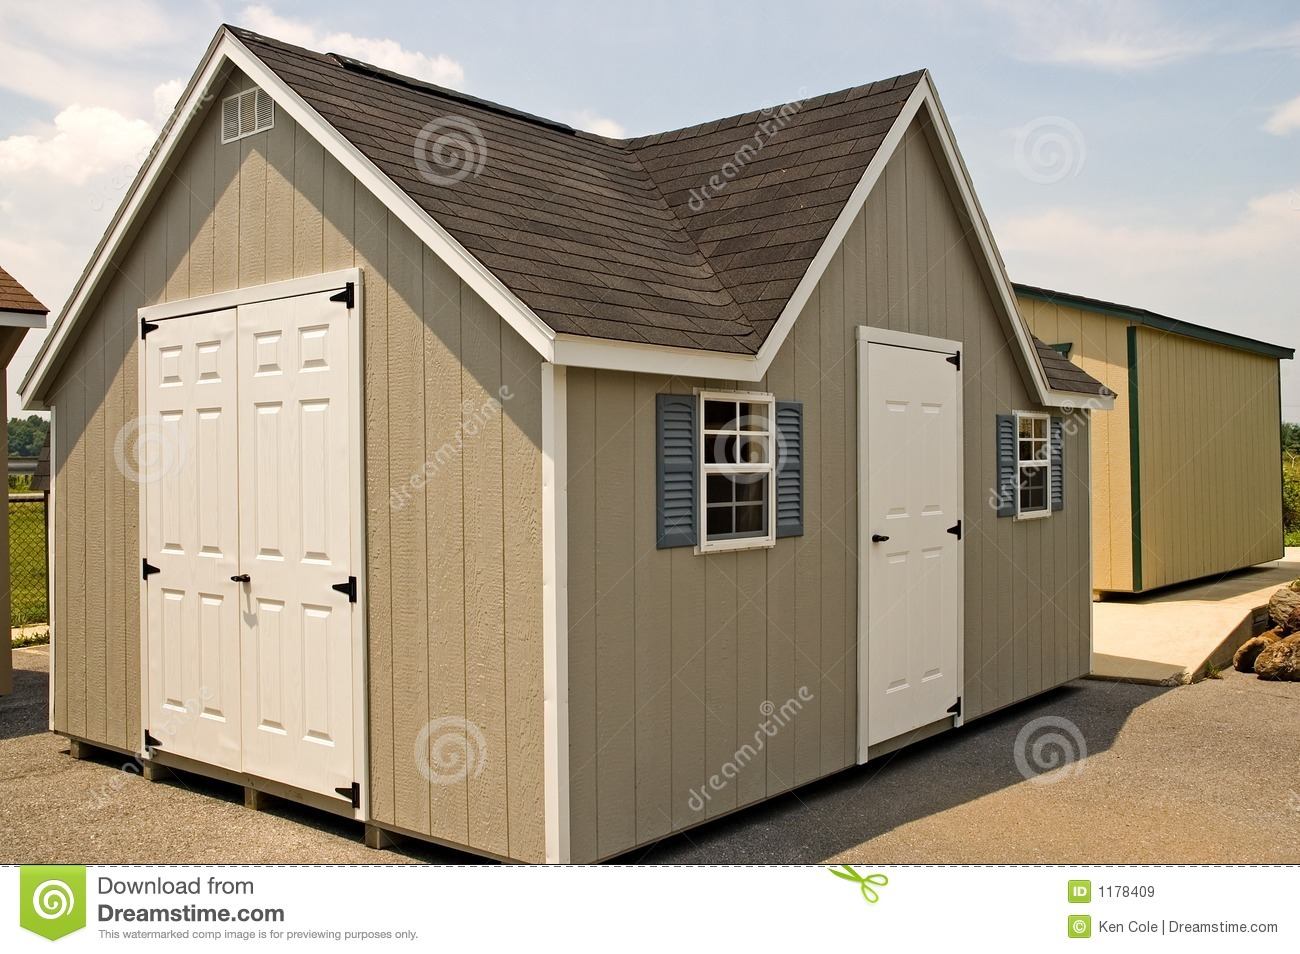 New utility storage shed royalty free stock images image for Utility storage shed